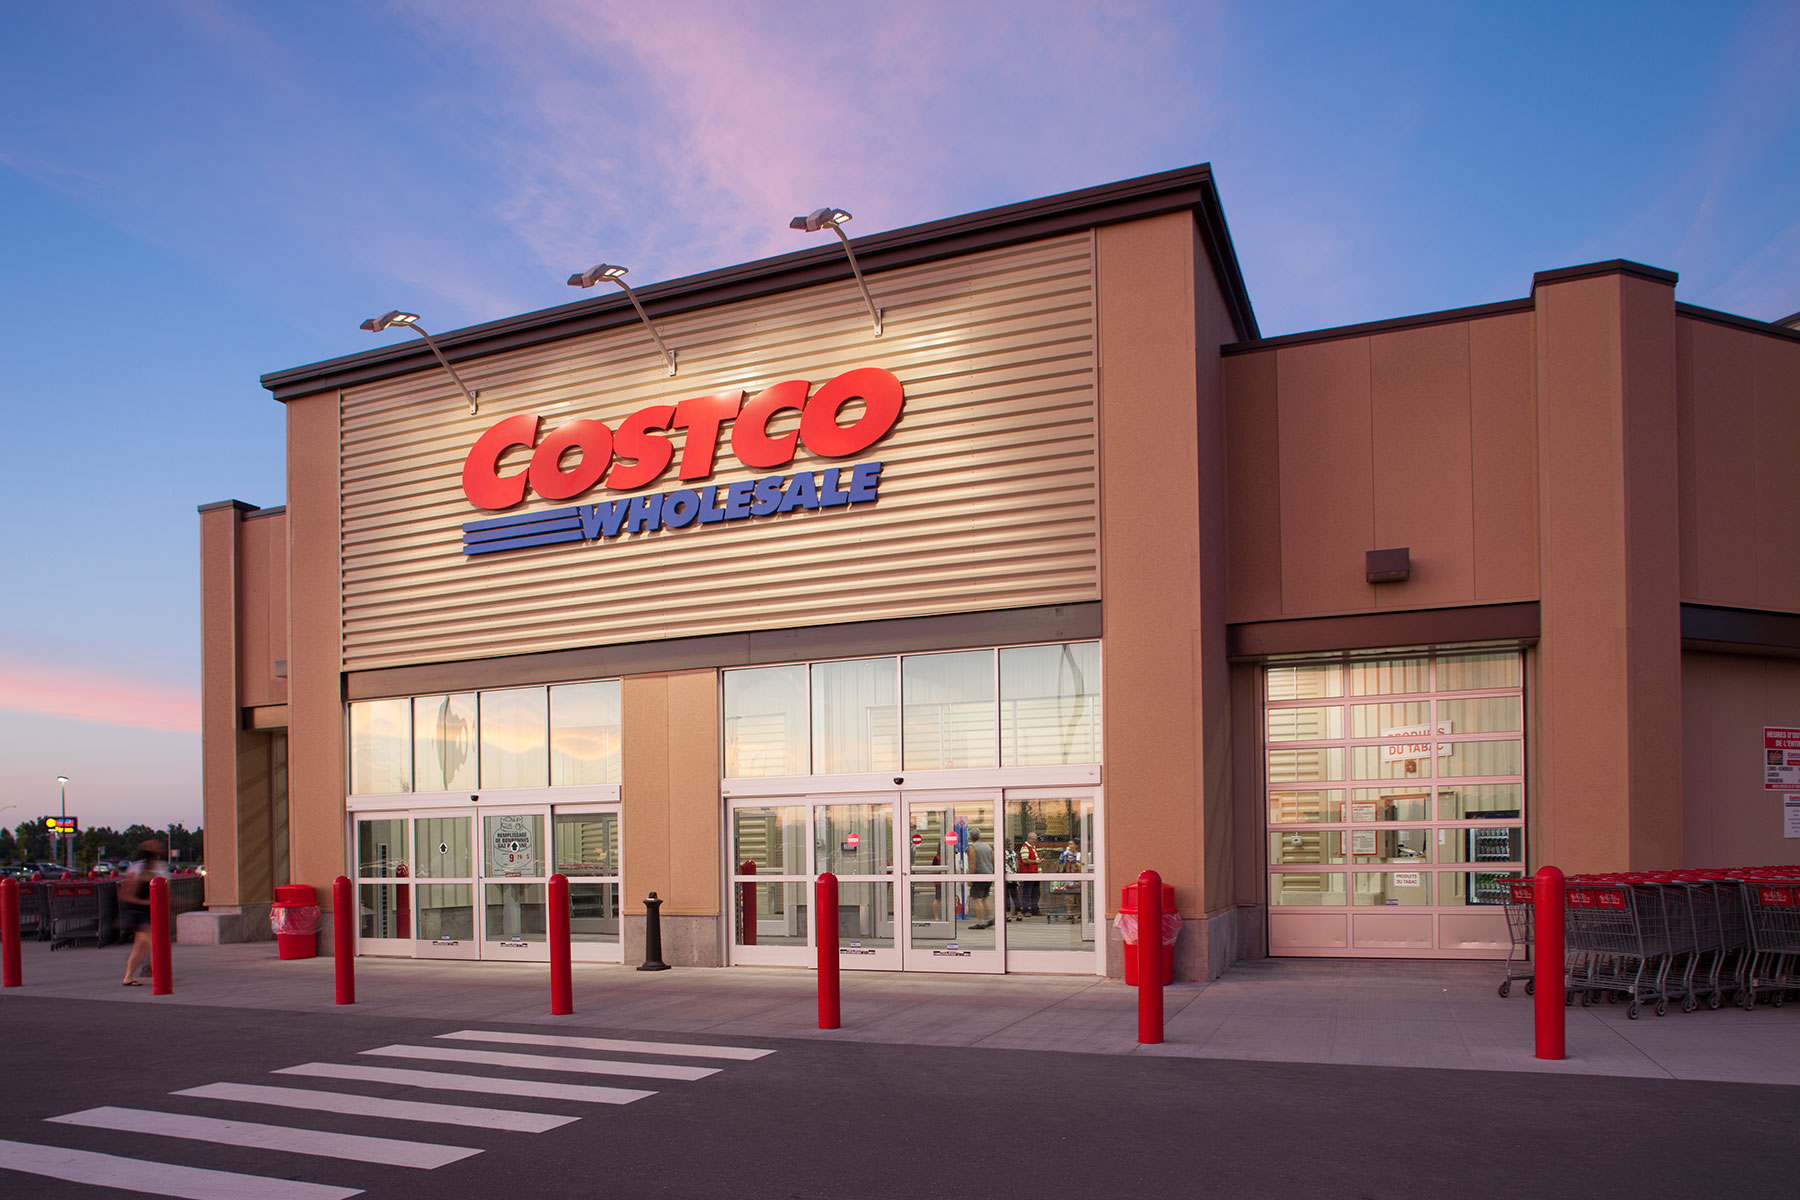 Real deals home decor hours for costco